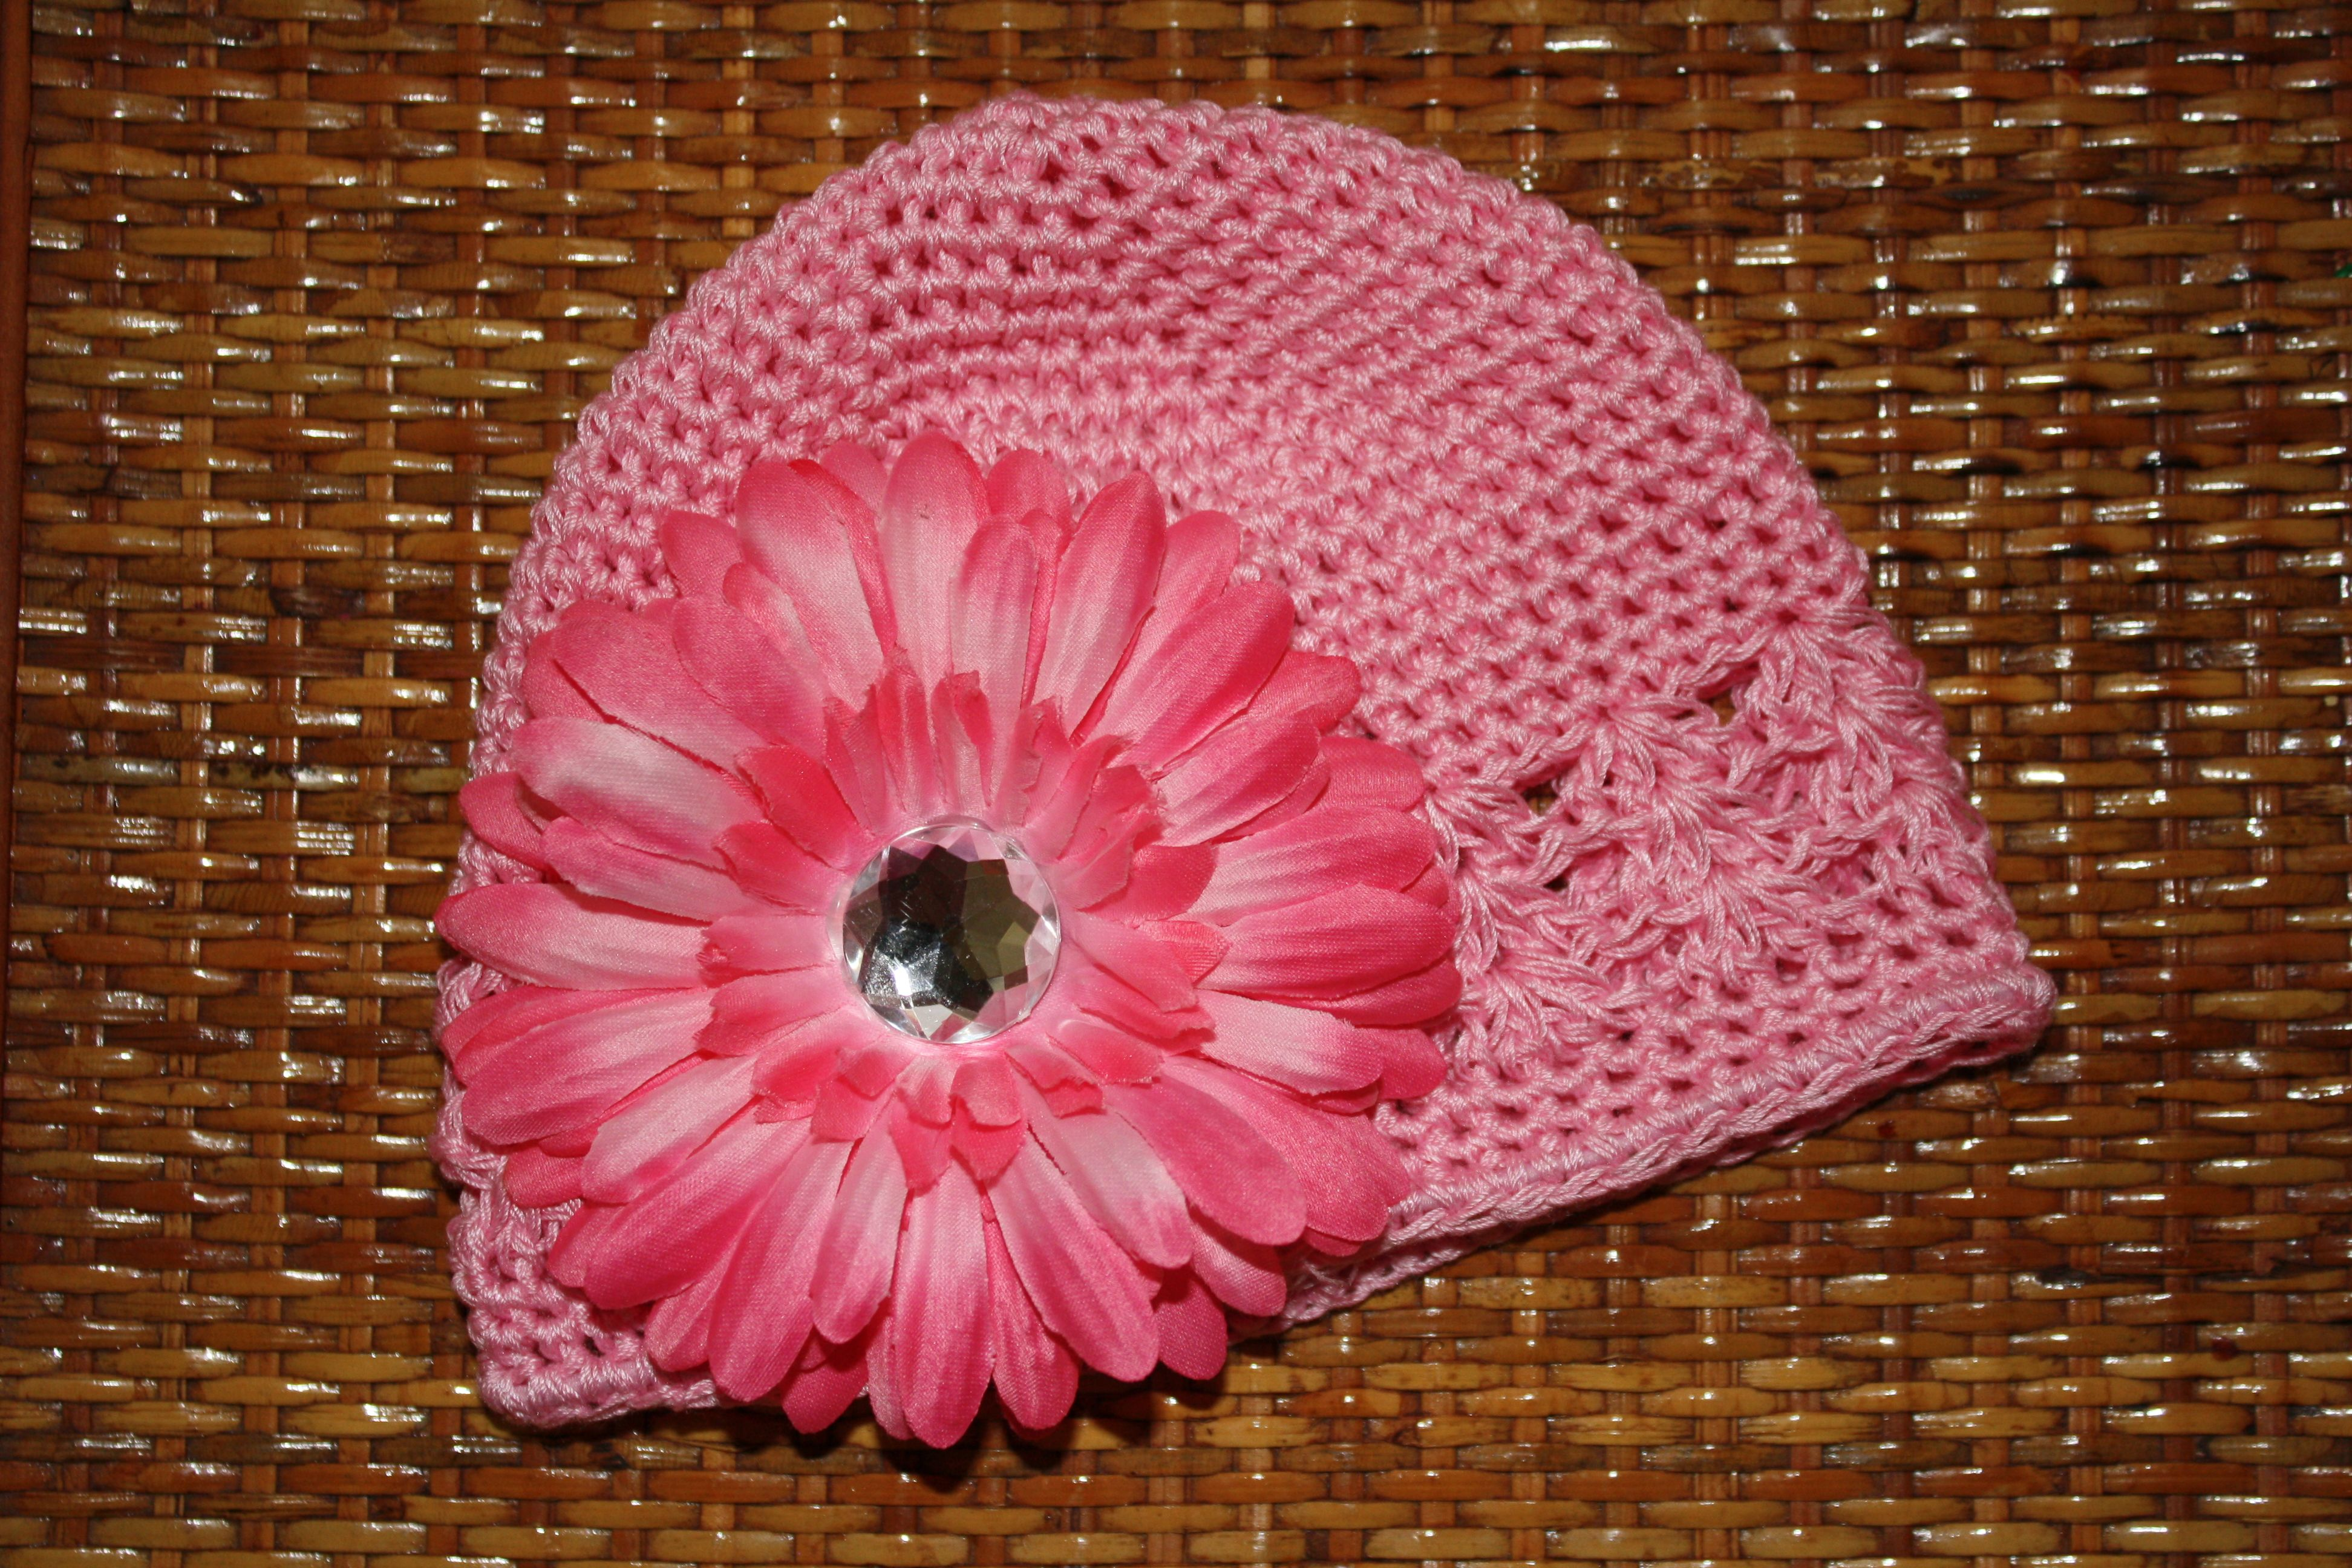 Pink infant kufi cap, size 0 to 12 months, $12.00